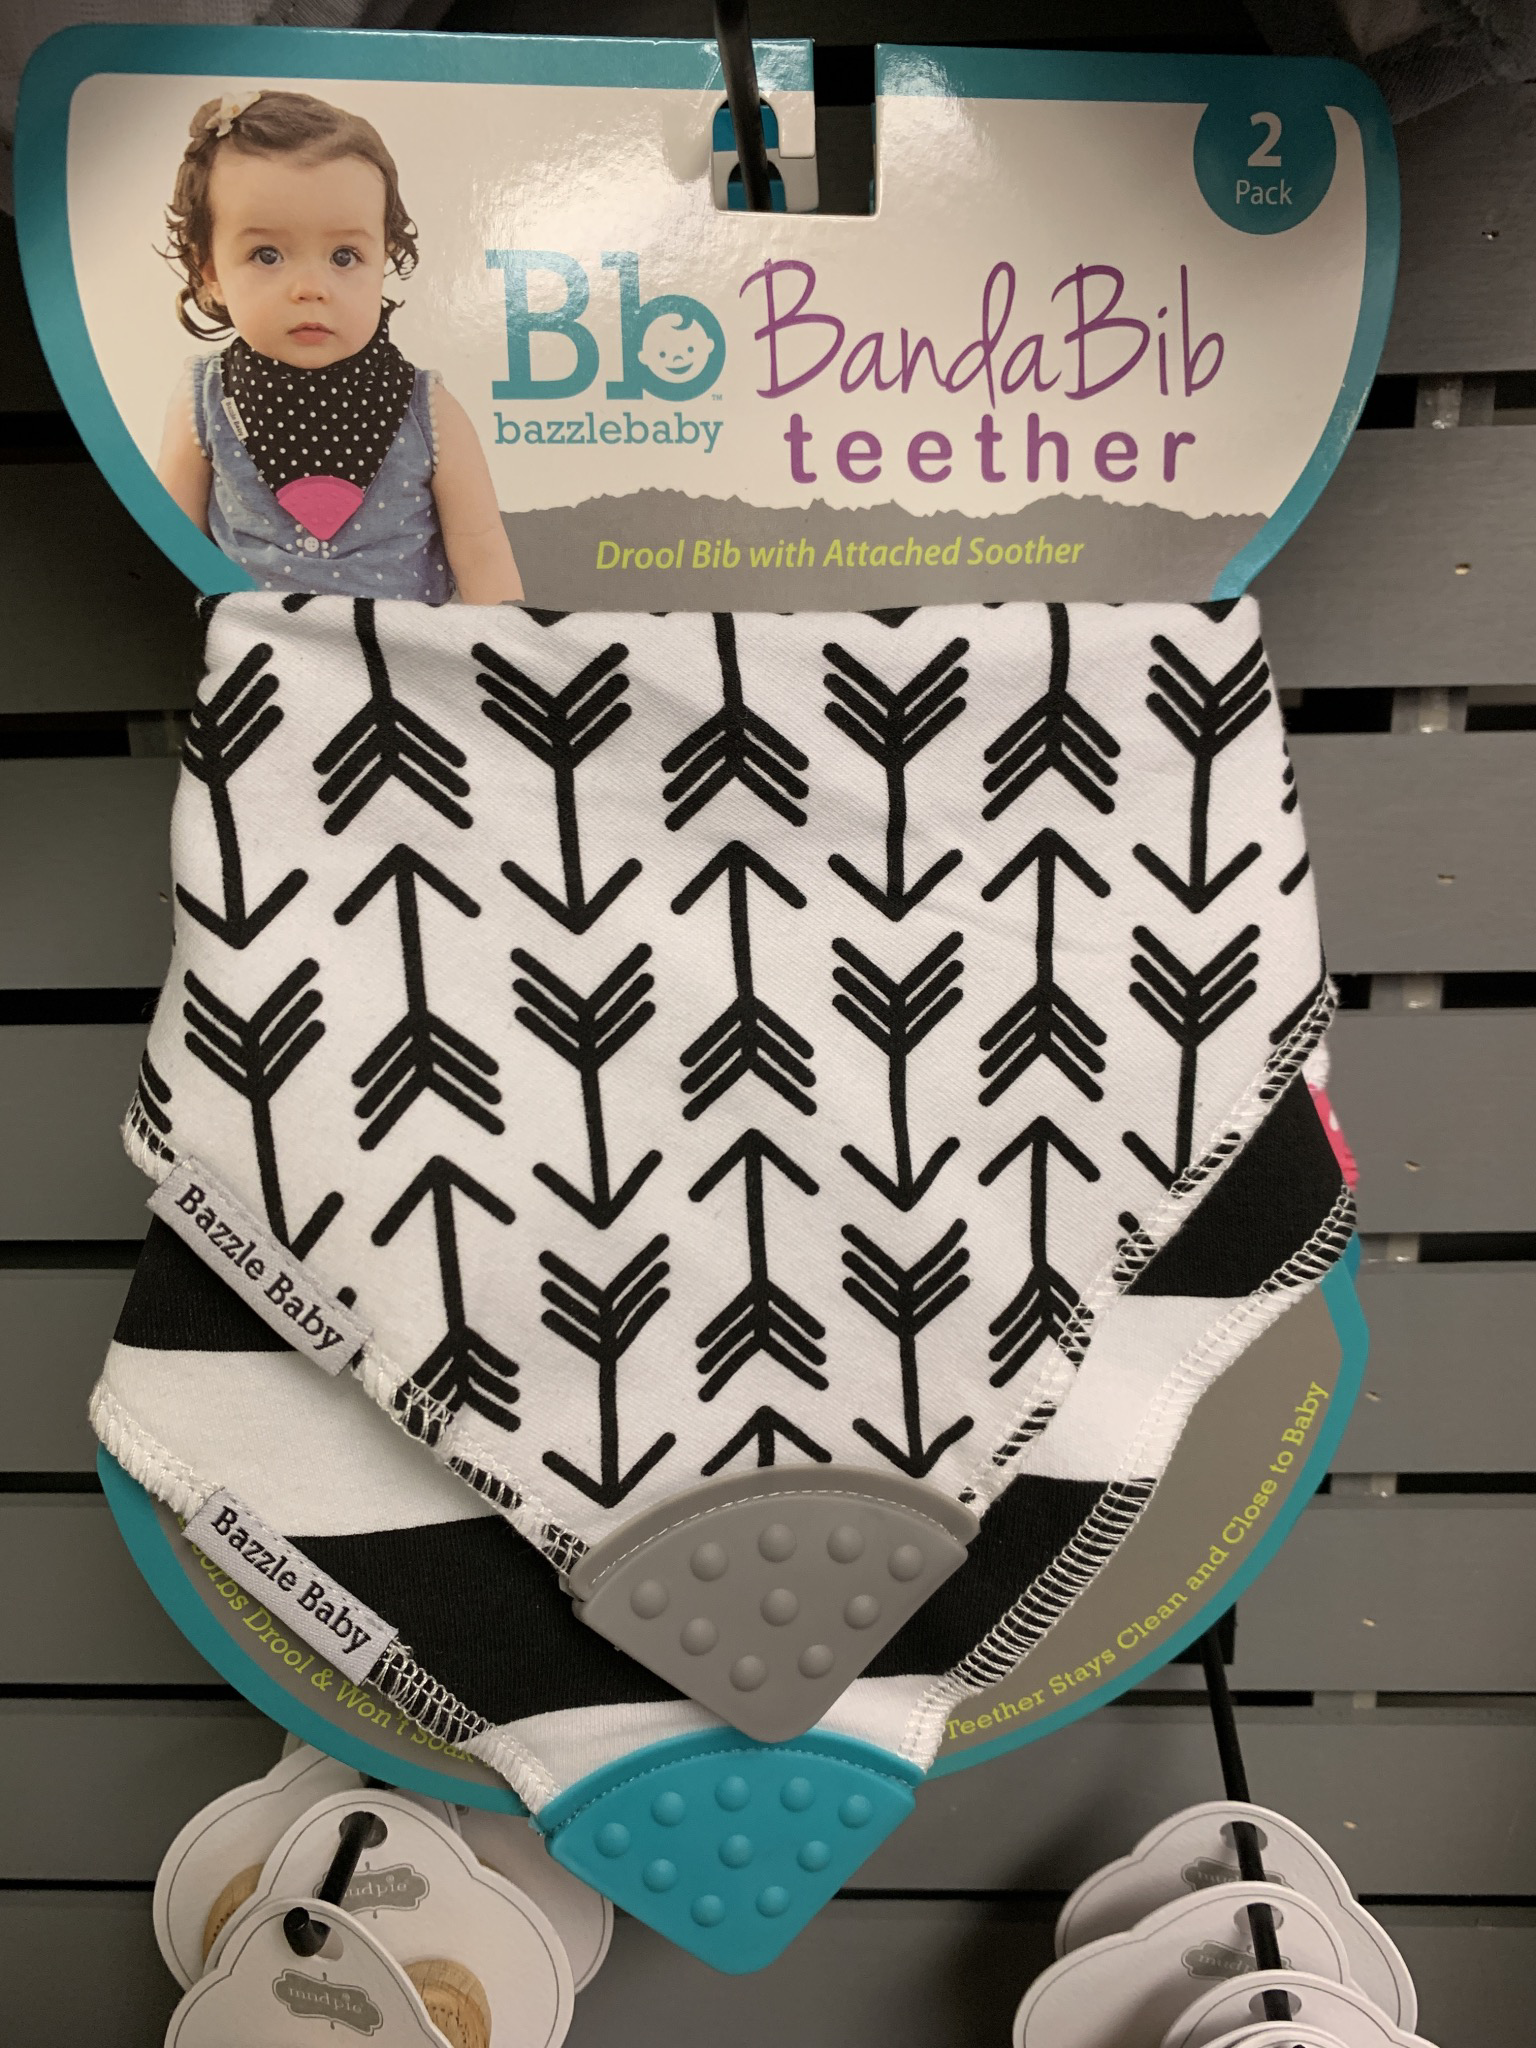 Bandana Bib Tether Arrows And Black And White Stripes 73055